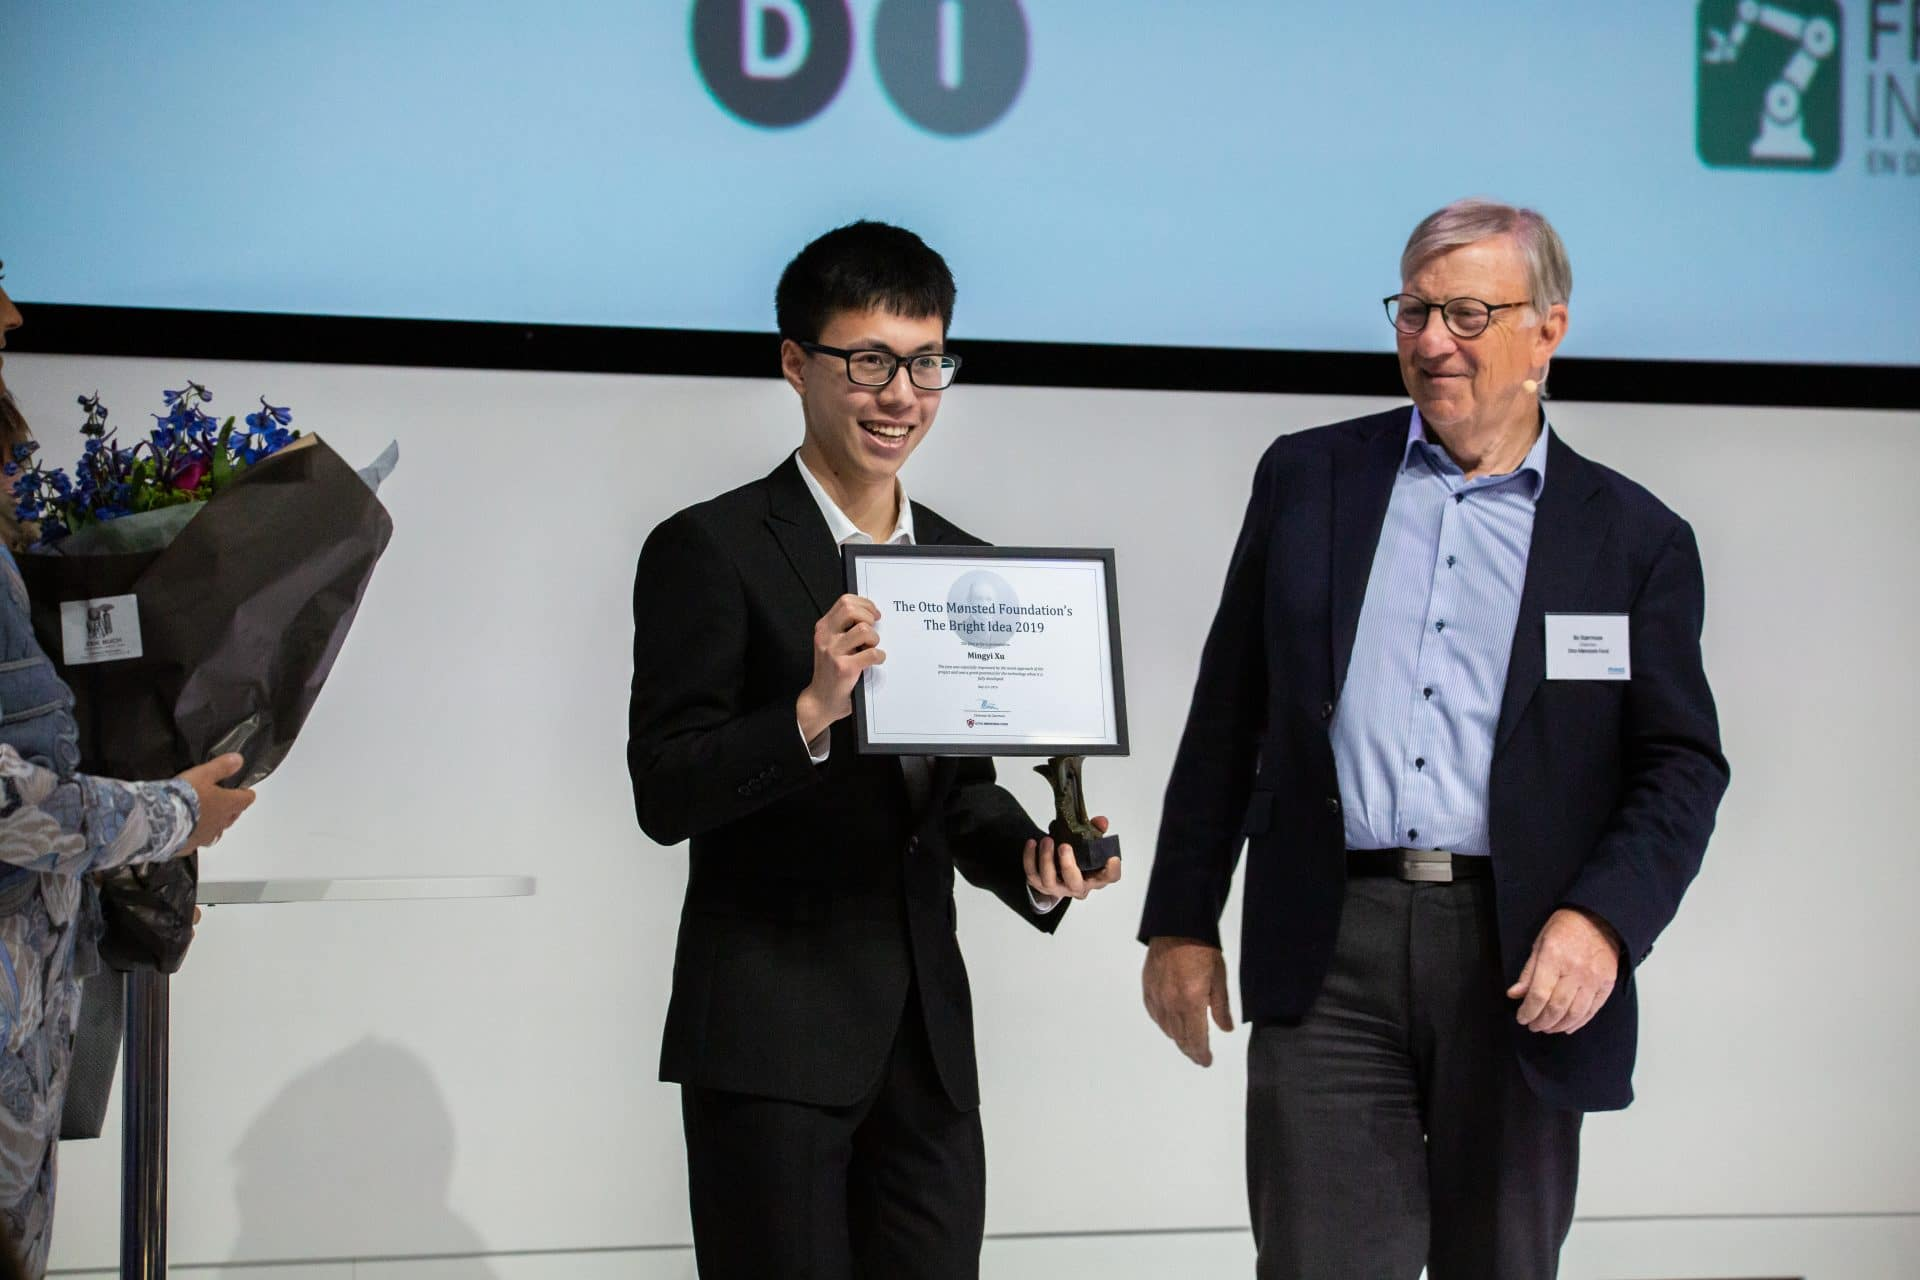 Otto Mønsteds Bright Idea Award 2019